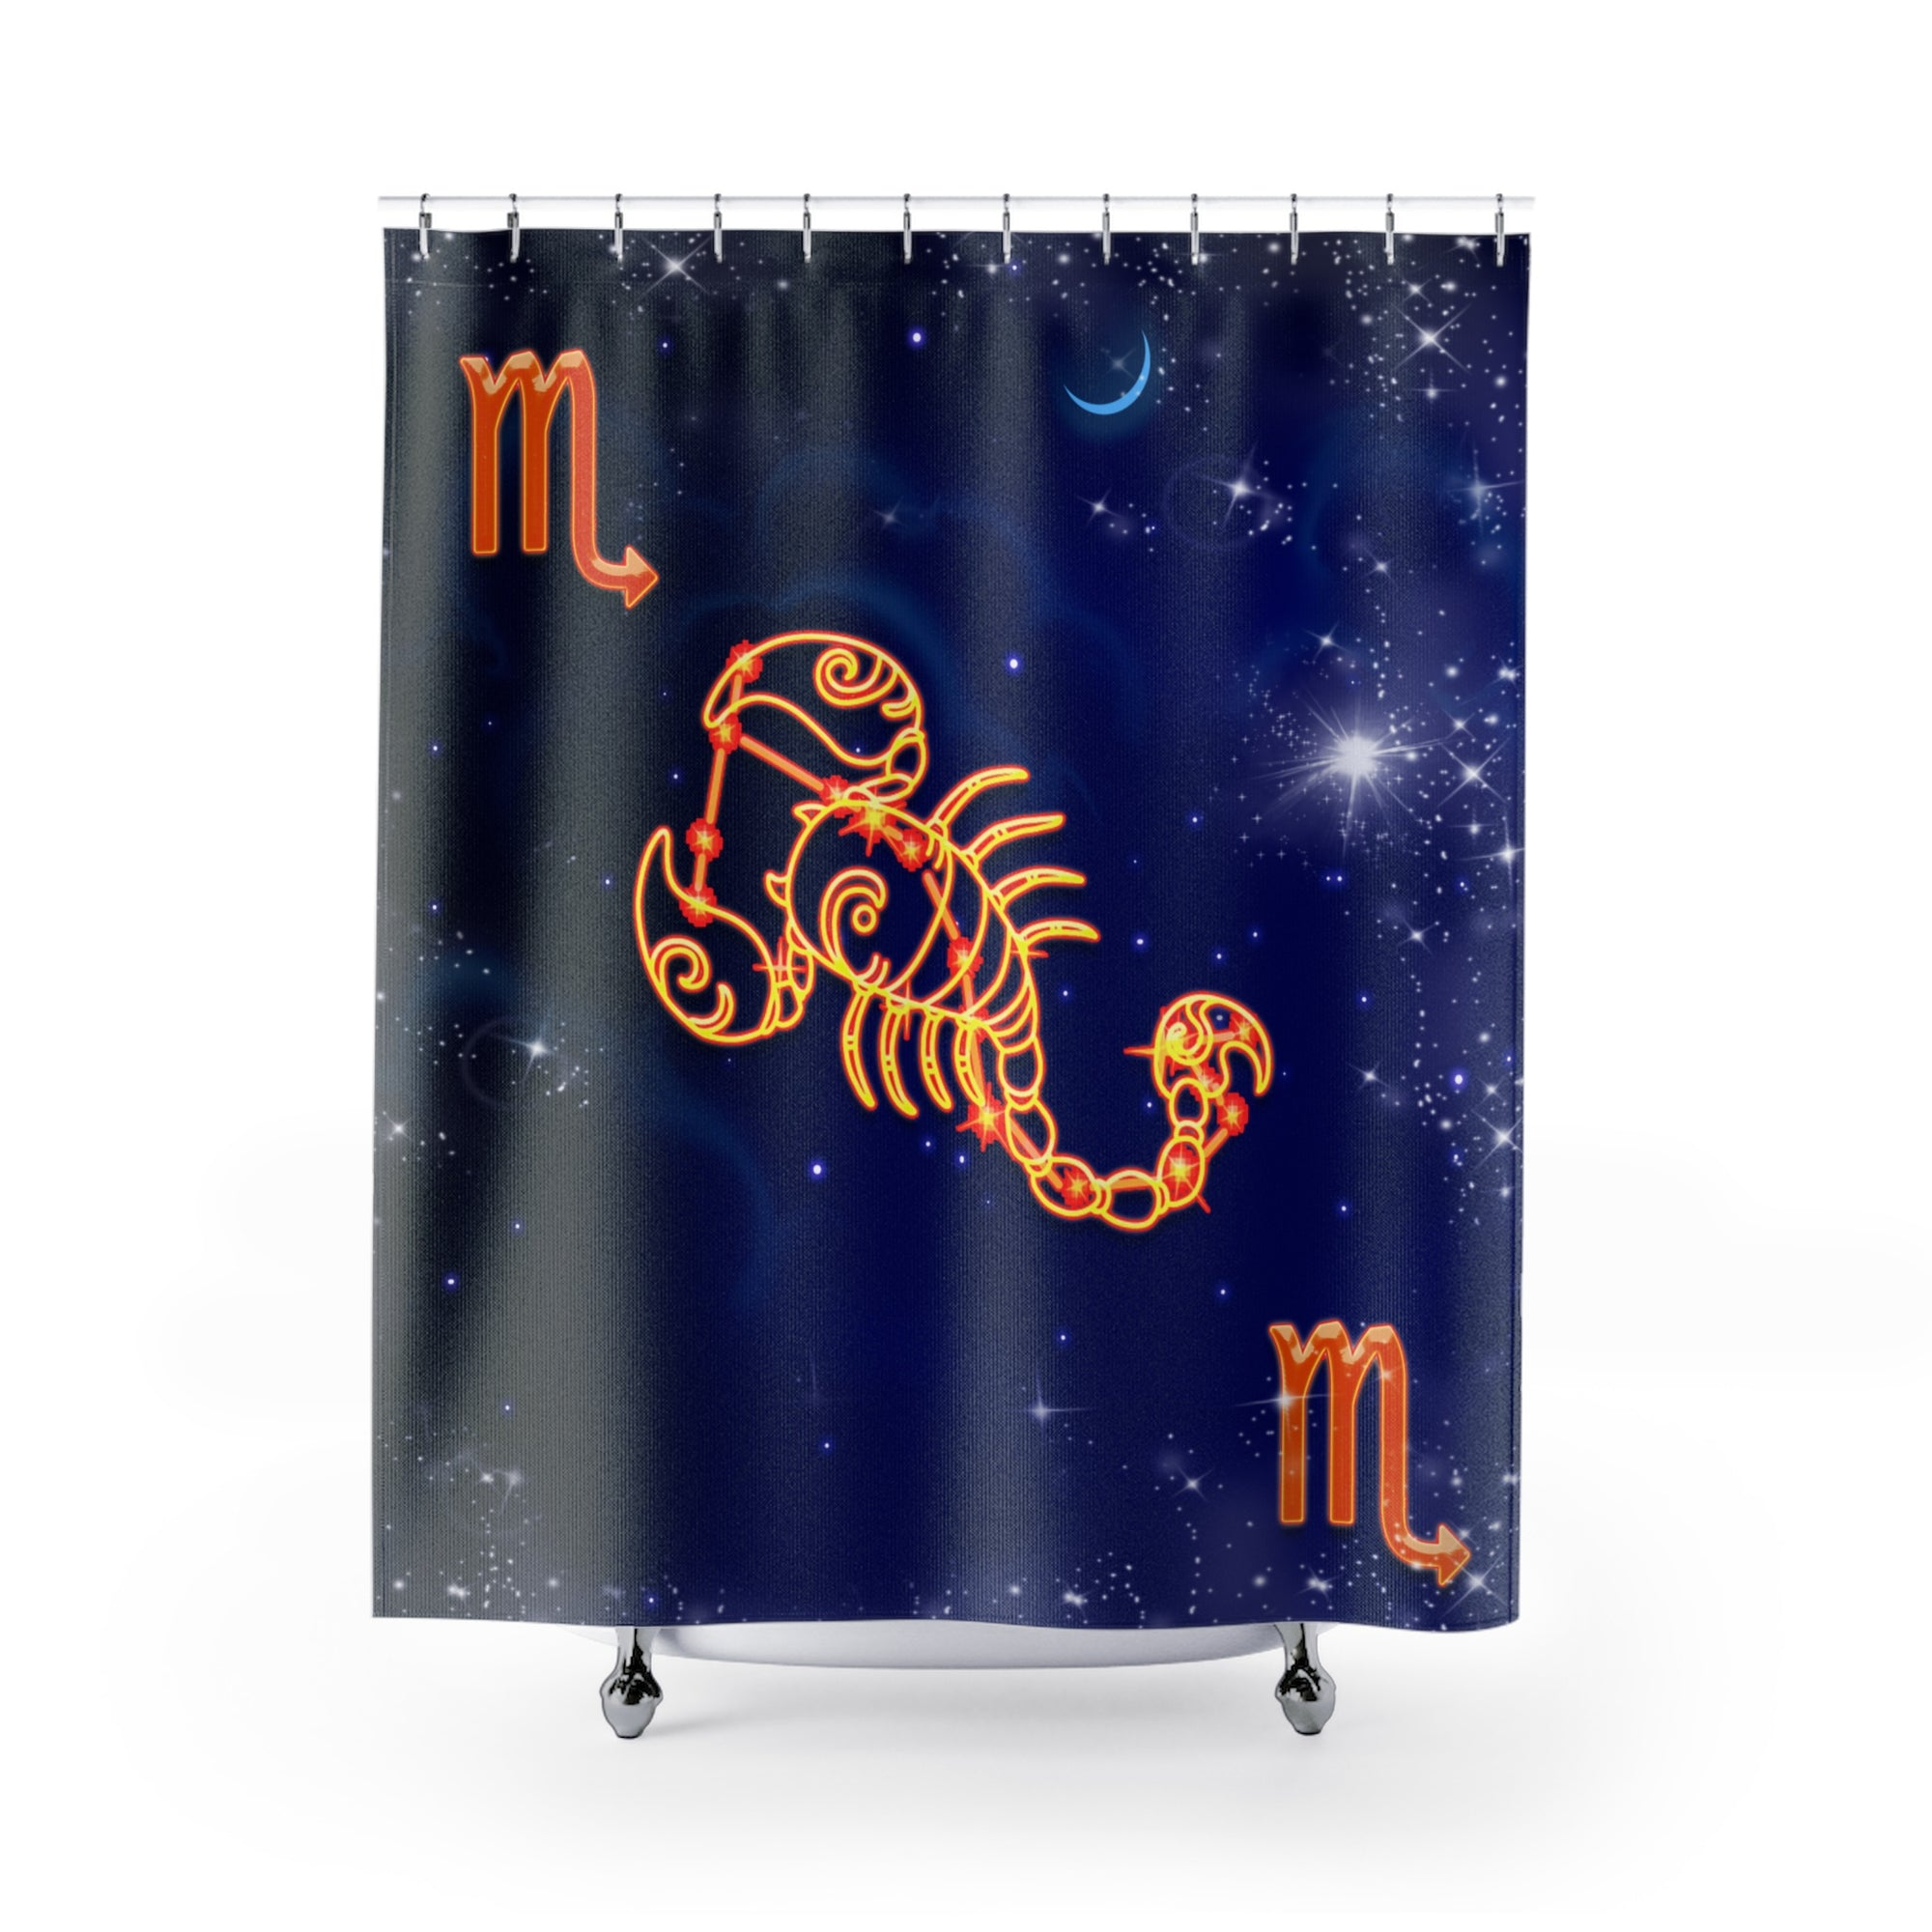 The Fiery Red Scorpio Shower Curtain - GearBody